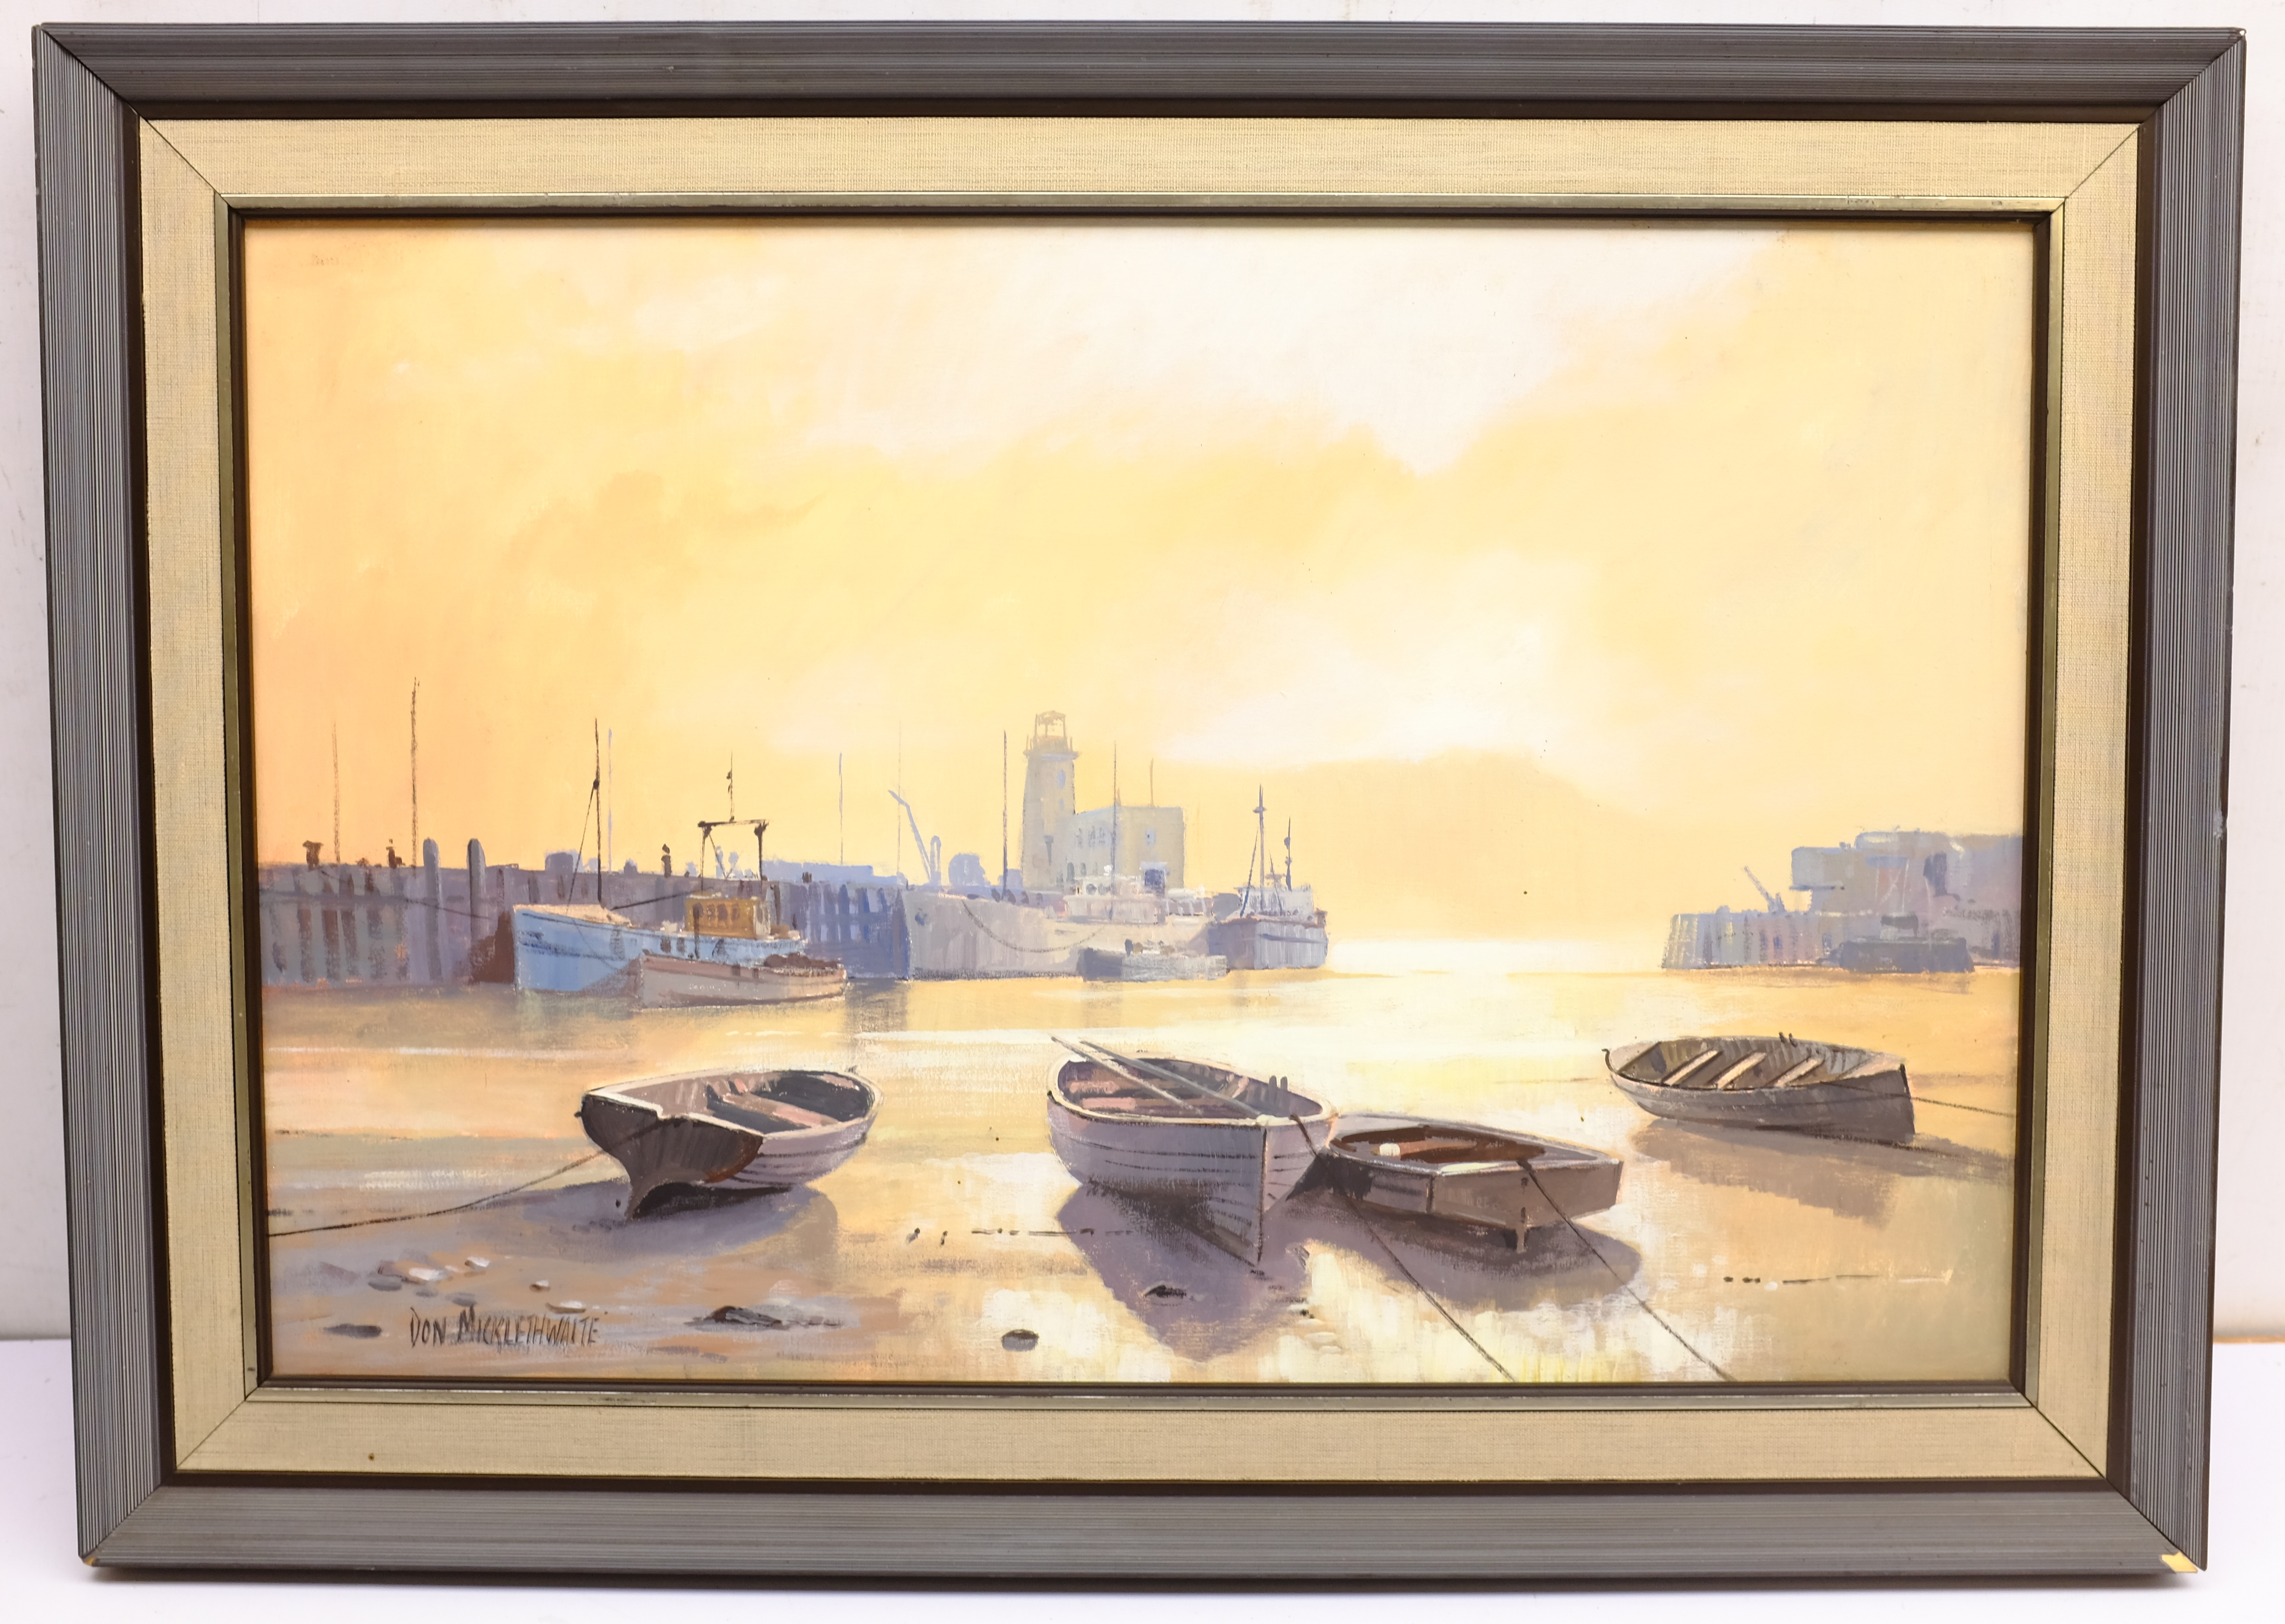 Don Micklethwaite (British 1936-): 'Summer Sun Scarborough', acrylic on board signed, titled and dat - Image 5 of 6